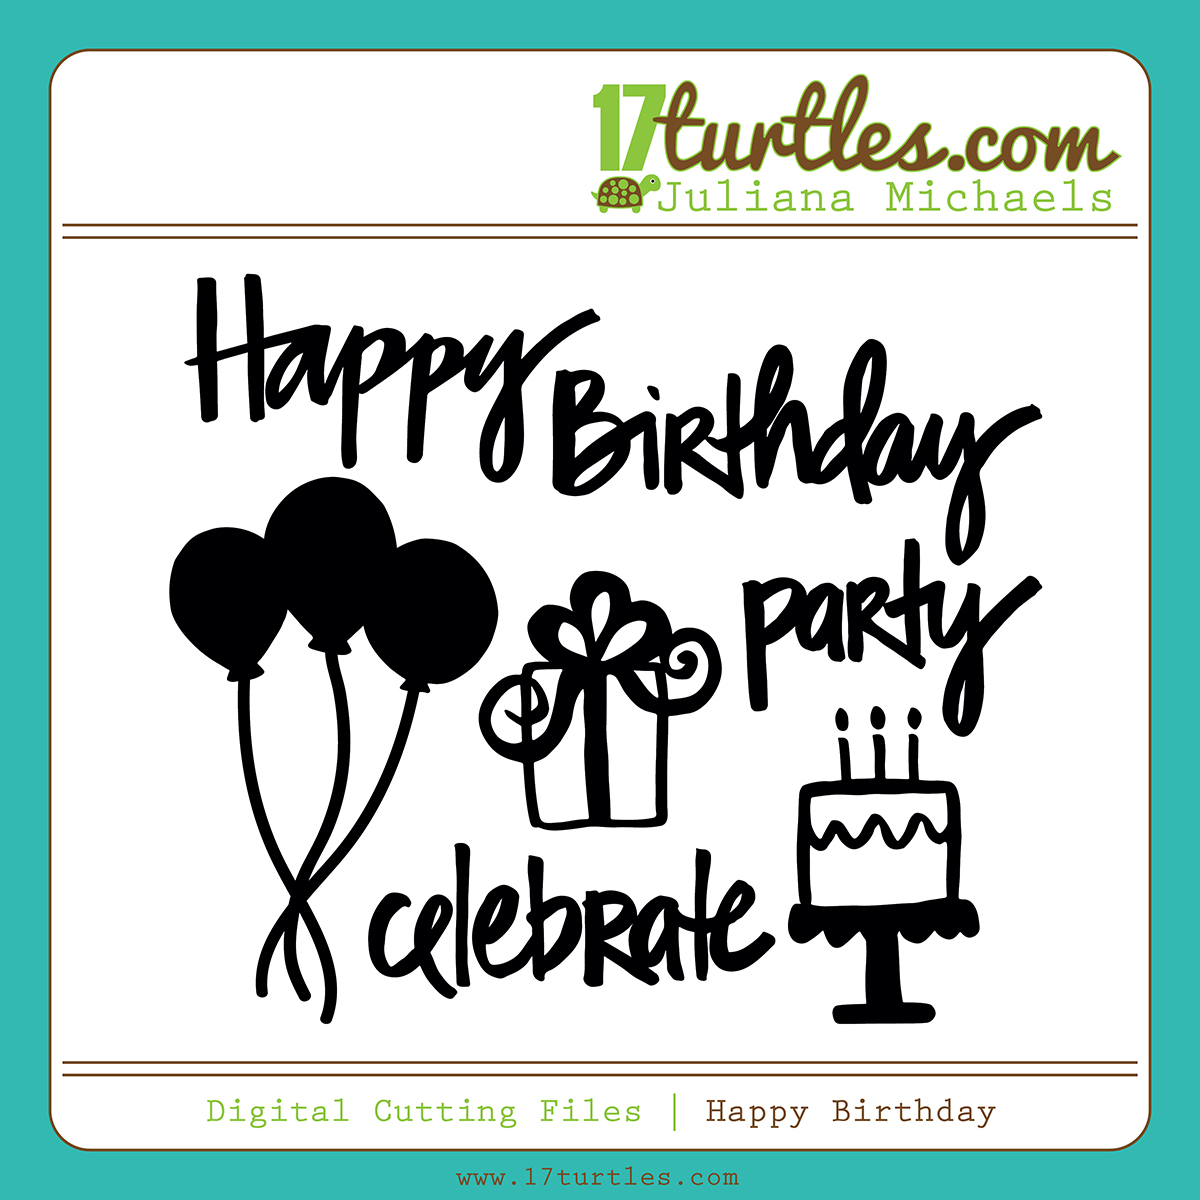 http://2.bp.blogspot.com/-_6g7P5WWzzE/U6XznUO37bI/AAAAAAAAROU/59DkUpOfKrE/s1600/Happy_Birthday_Juliana_Michaels_17turtles_1.jpg